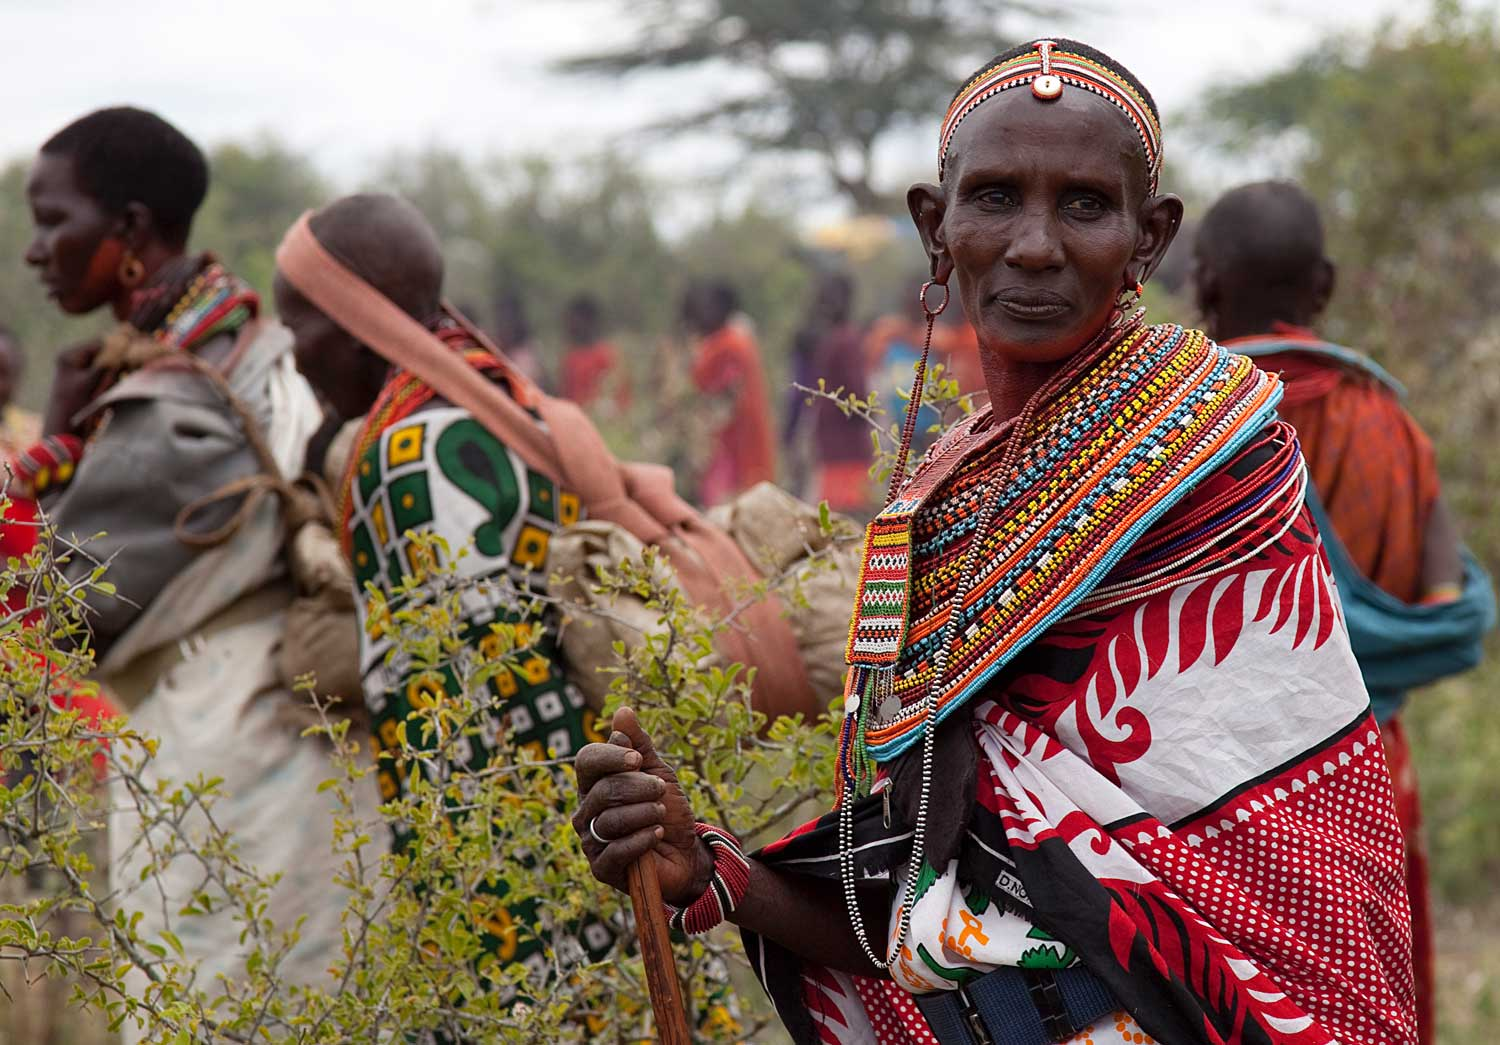 Marcy Mendelson, The Samburu Story | Her beads tell a story.  This Samburu woman's jewelry shows she is married and the mother of a moran (warrior).